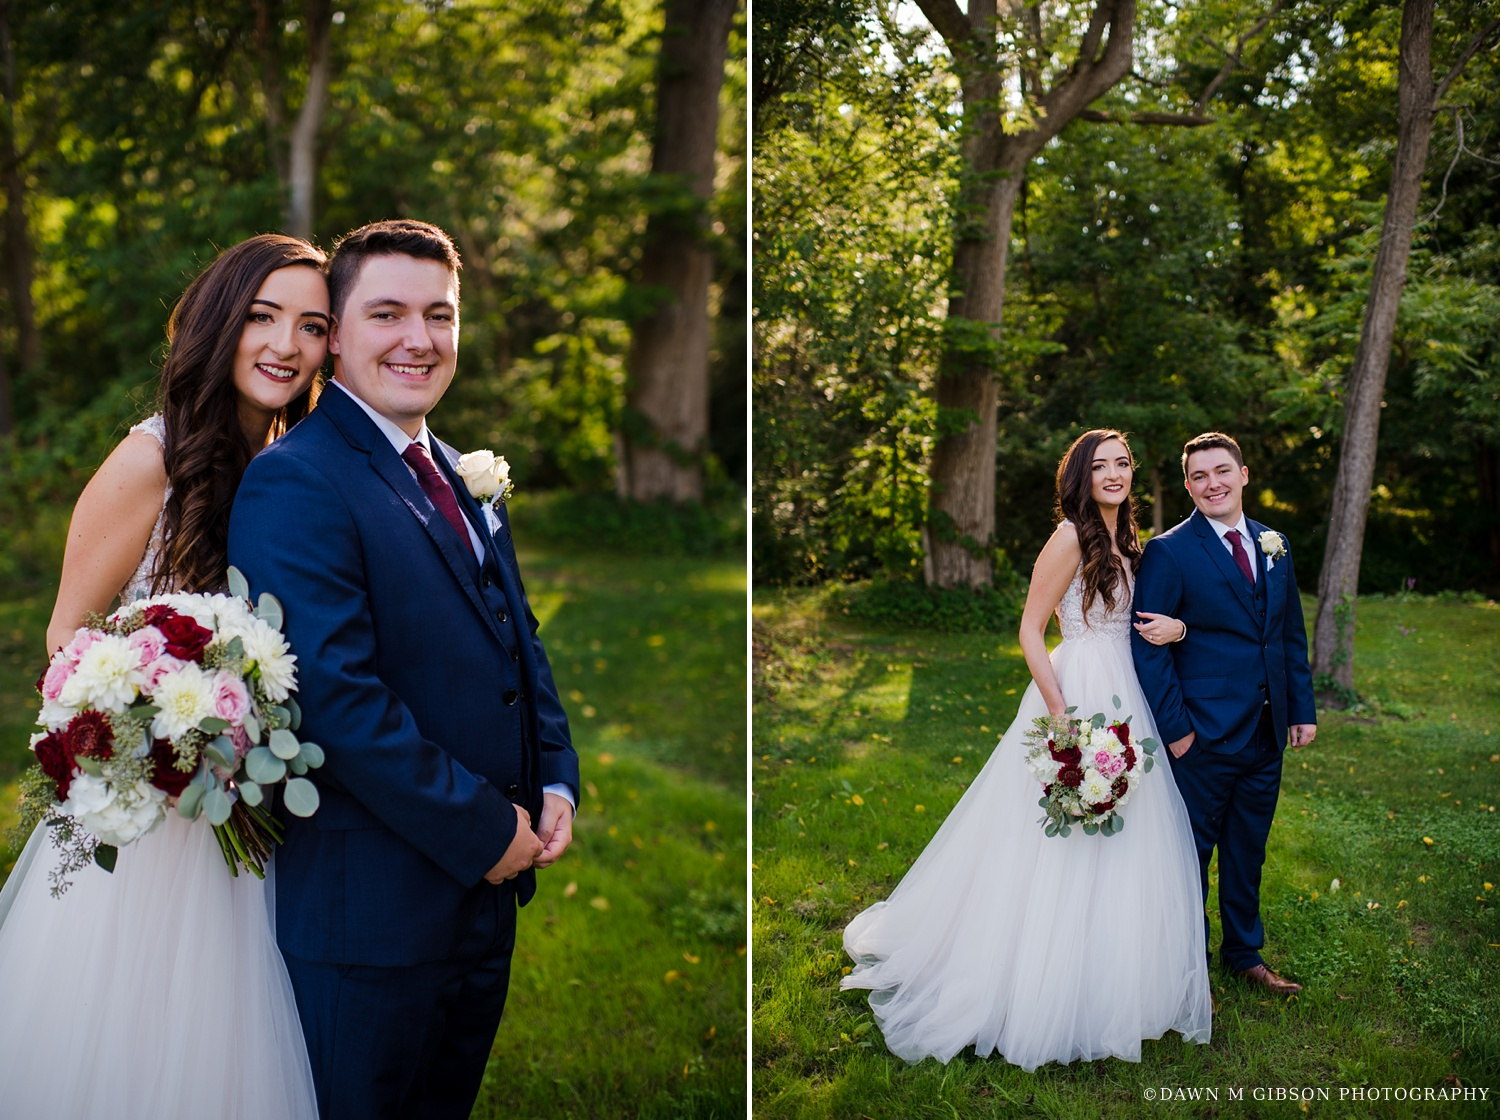 Carly + Paul's Wedding at The Sinclair of Skaneateles